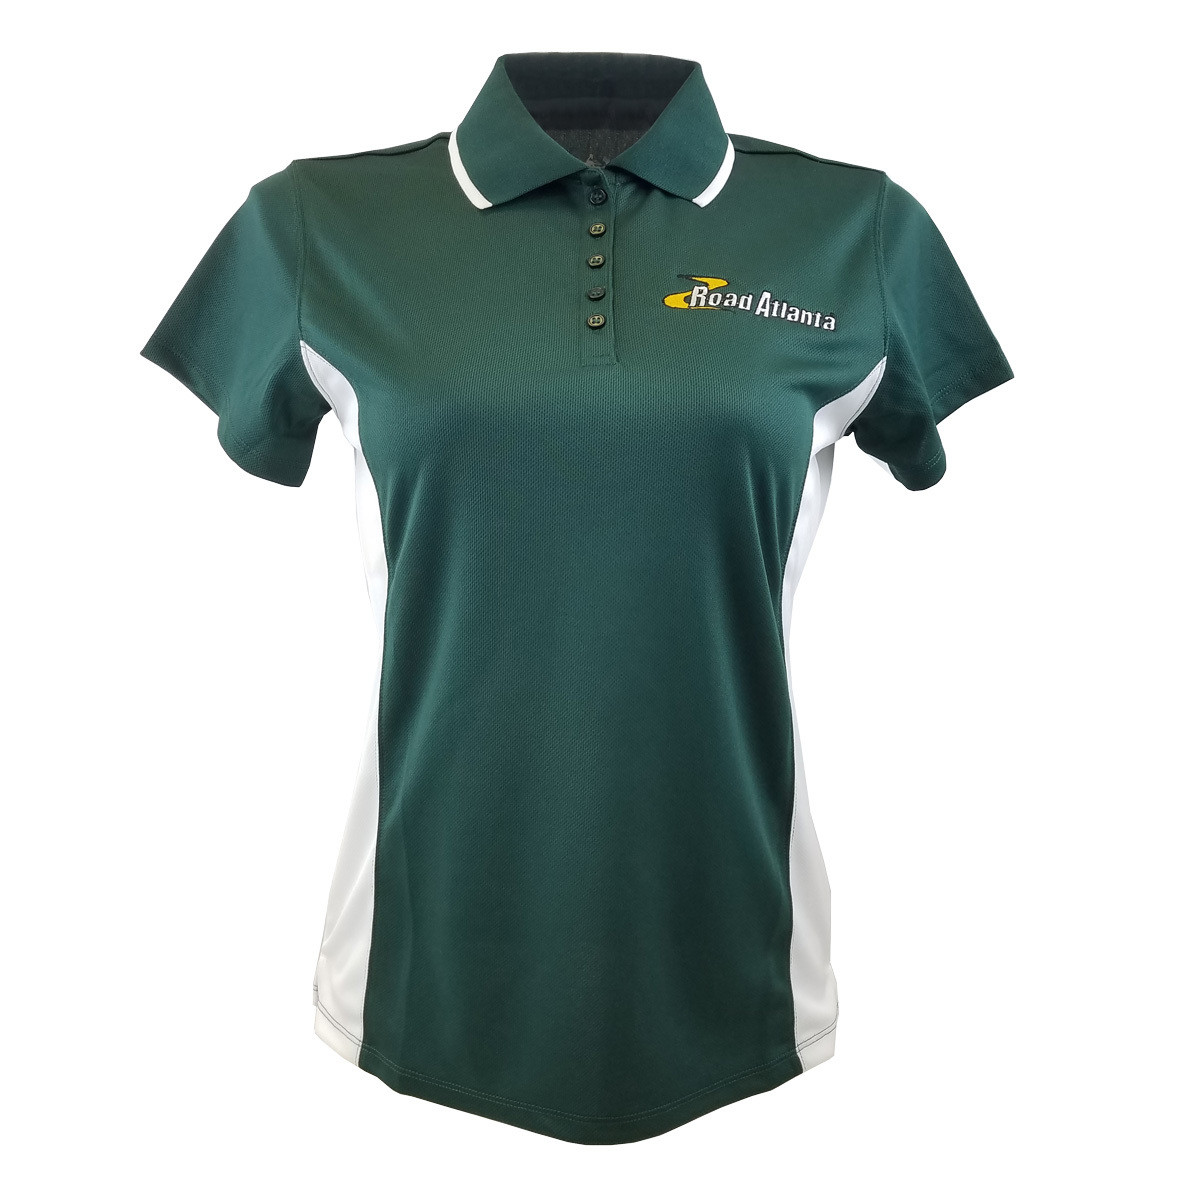 Road Atlanta Ladies Polo- Forest Green/White